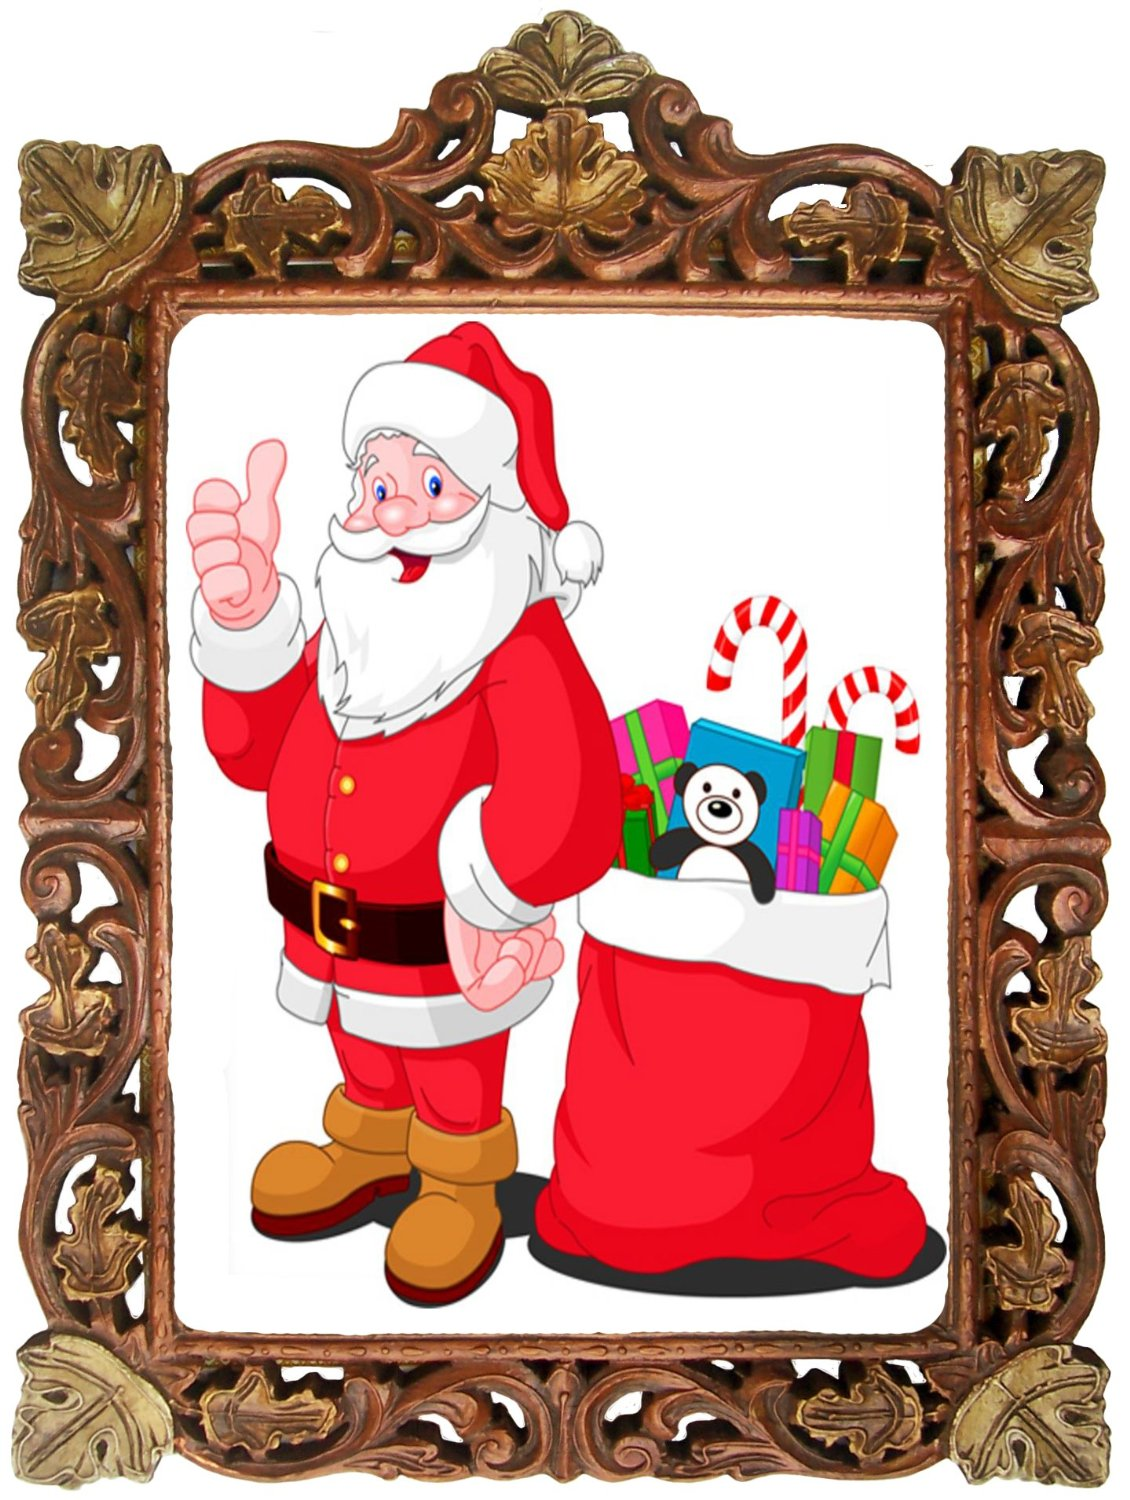 Buy santa claus with gifts poster framed in wood craft frame santa claus with gifts poster framed in wood craft frame indian wood decorative frame jeuxipadfo Choice Image